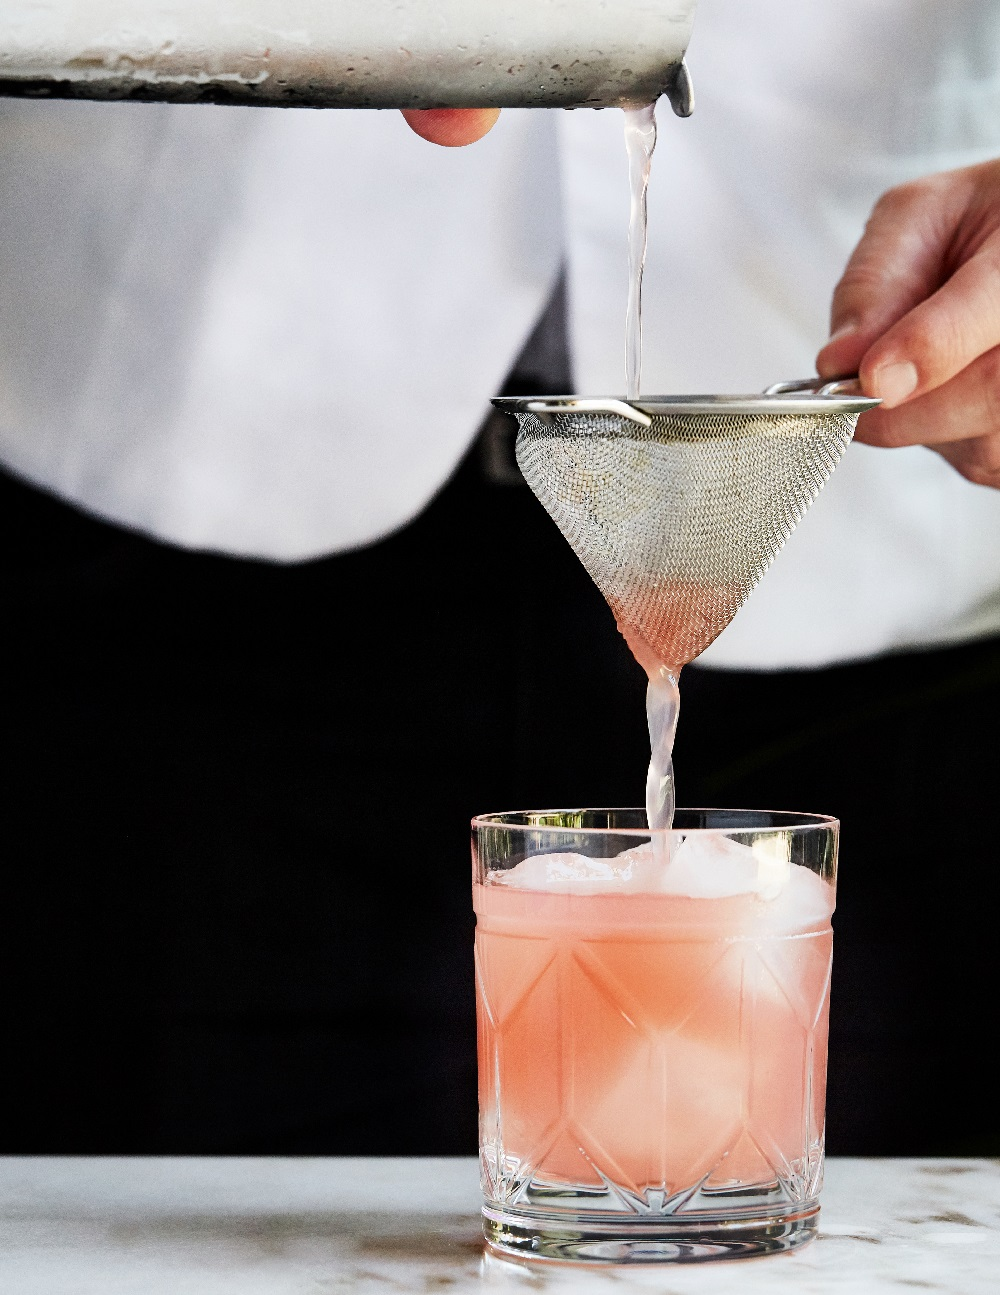 It's Georgie Time - Available from 3 pm to 7 pm DailyMeet us at the Georgie Bar for a specially priced menu of libations, small bites and plenty of delights.Beers, Premium Spirits and WineFrom $6 to $10Menu of Small BitesFrom $5 to $10Signature Martini Cart$21